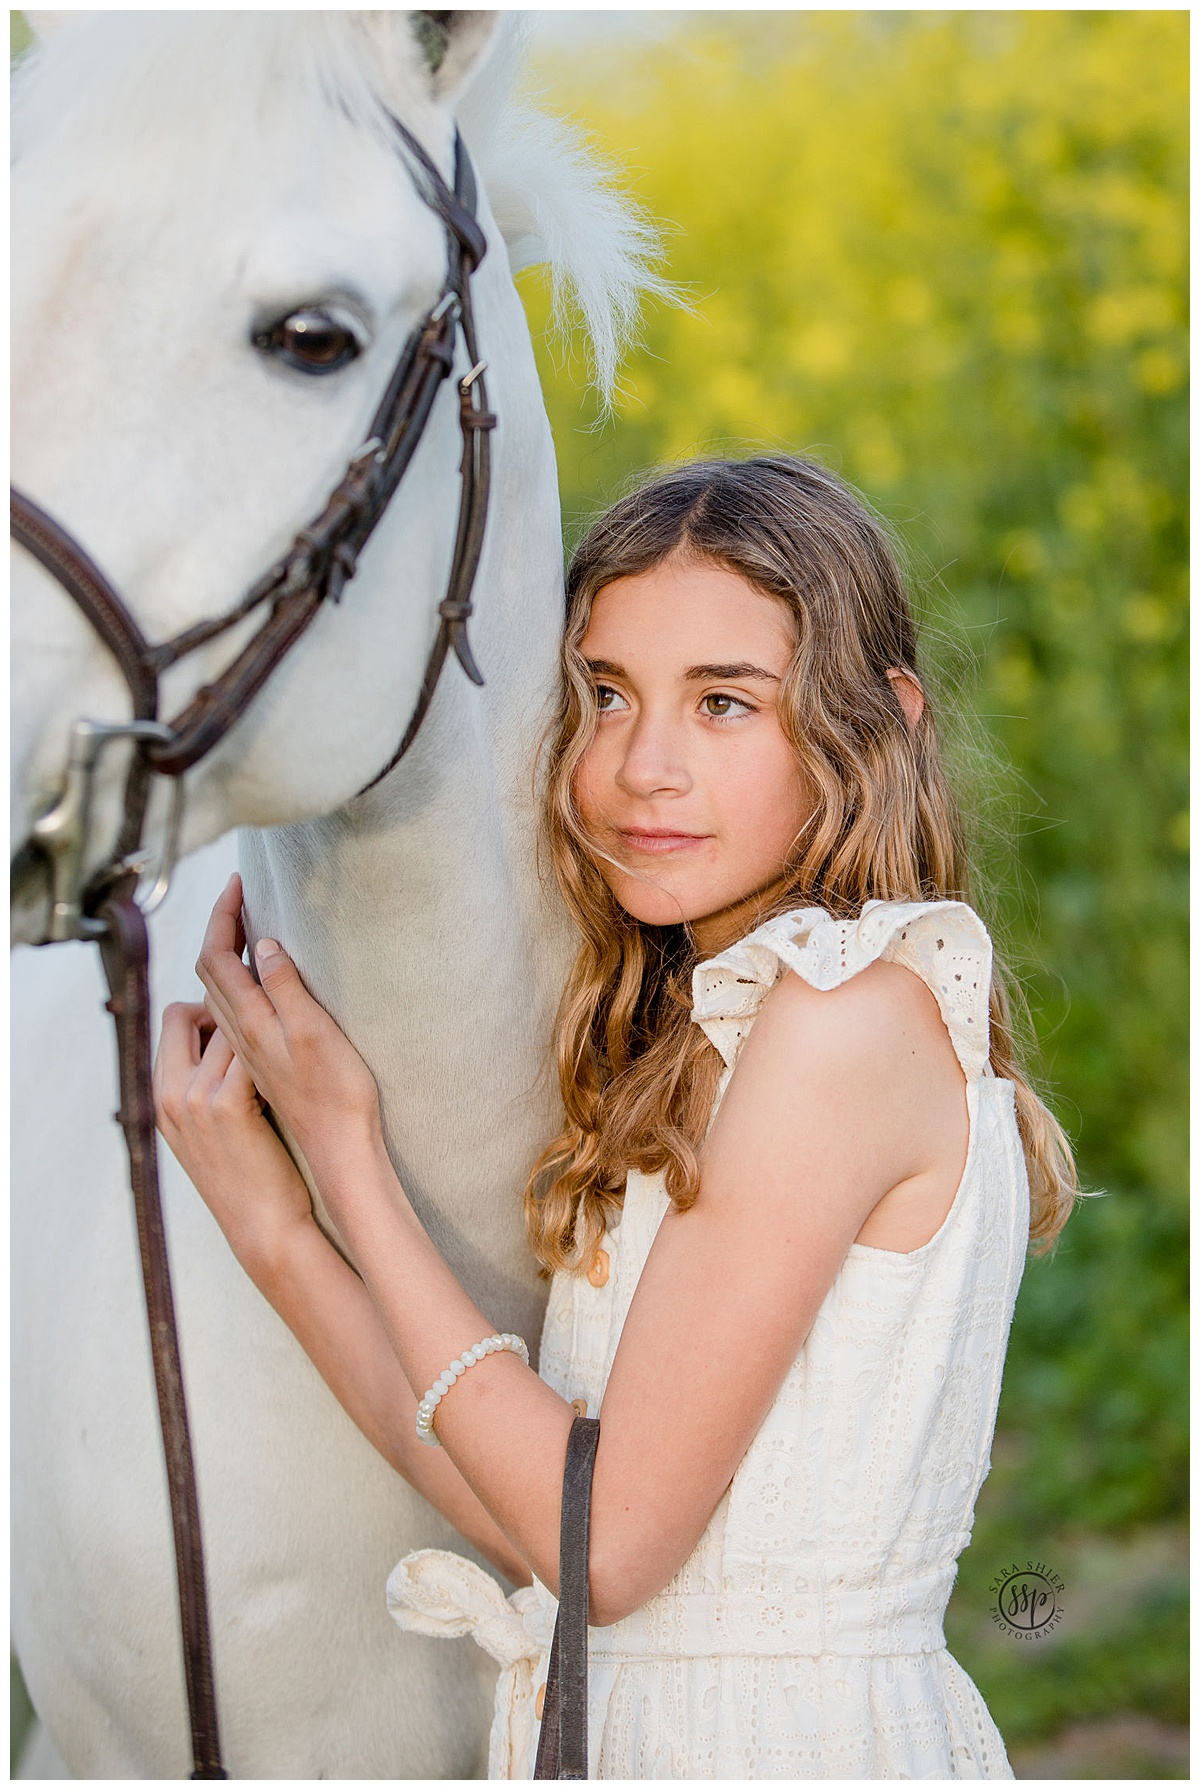 Black Background Horse Rider Equine Photographer Southern California Sara Shier Photography SoCal Equestrian Cowgirl USEF_0201.jpg